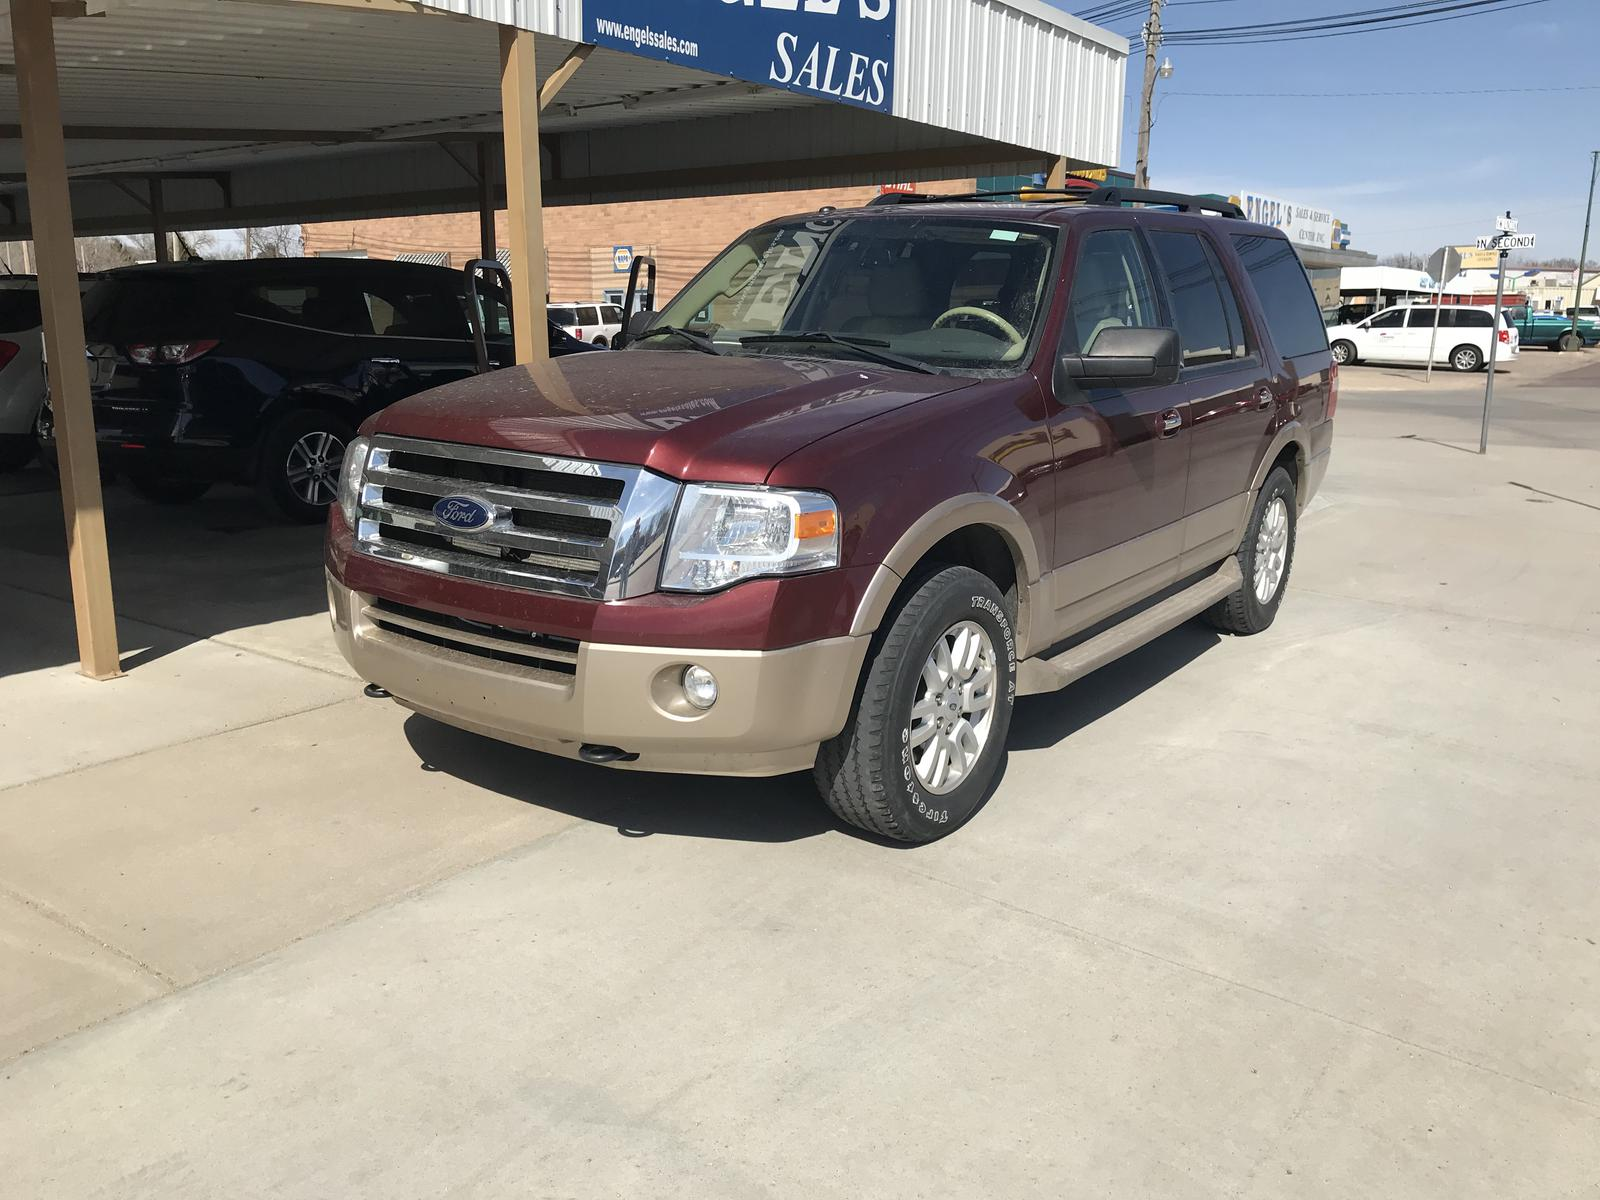 2012 ford expedition for sale in norton ks engels sales service center inc 785 877 3391